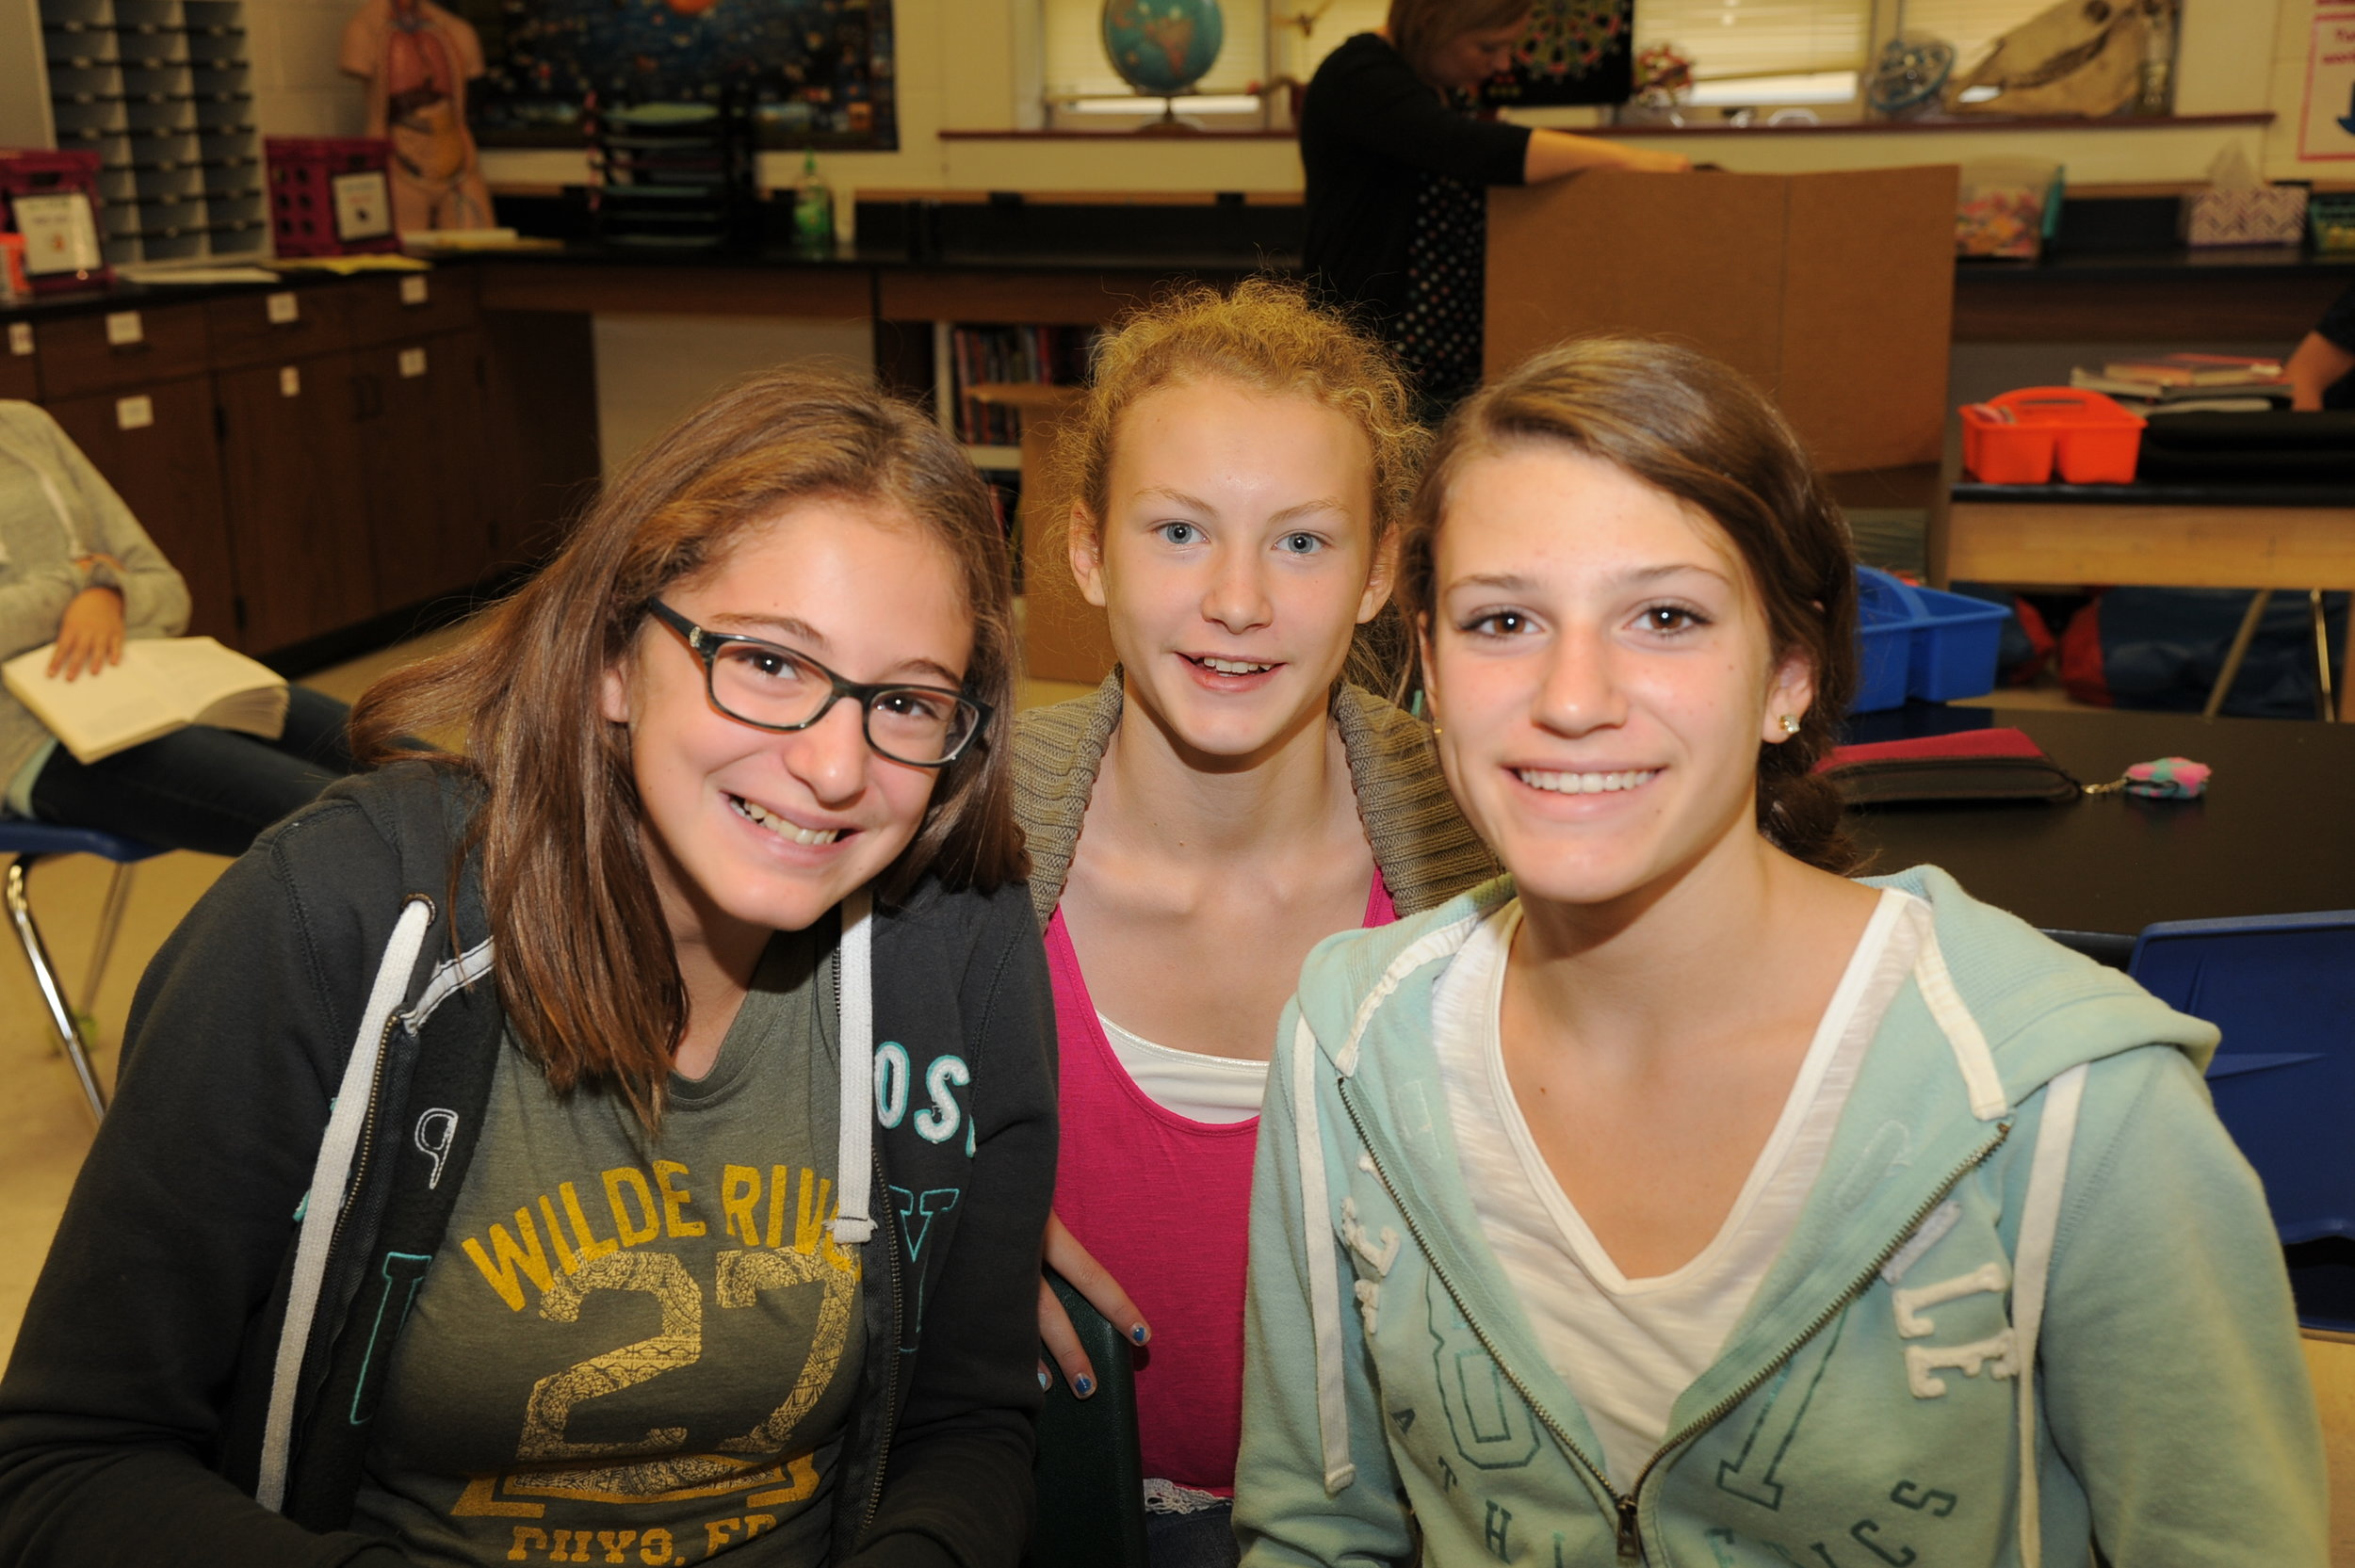 """On February 17, 2017, St. John Lutheran School conducted our annual """"Pizza Fundraiser."""" Members of our school and our congregation get together annually to make over 4,500 ready to bake pizzas. The proceeds from the sale benefit special projects in our school. This year's proceeds will go towards putting new flooring in all our classrooms. It's one of the many ways that our school community pulls together to make us stronger."""